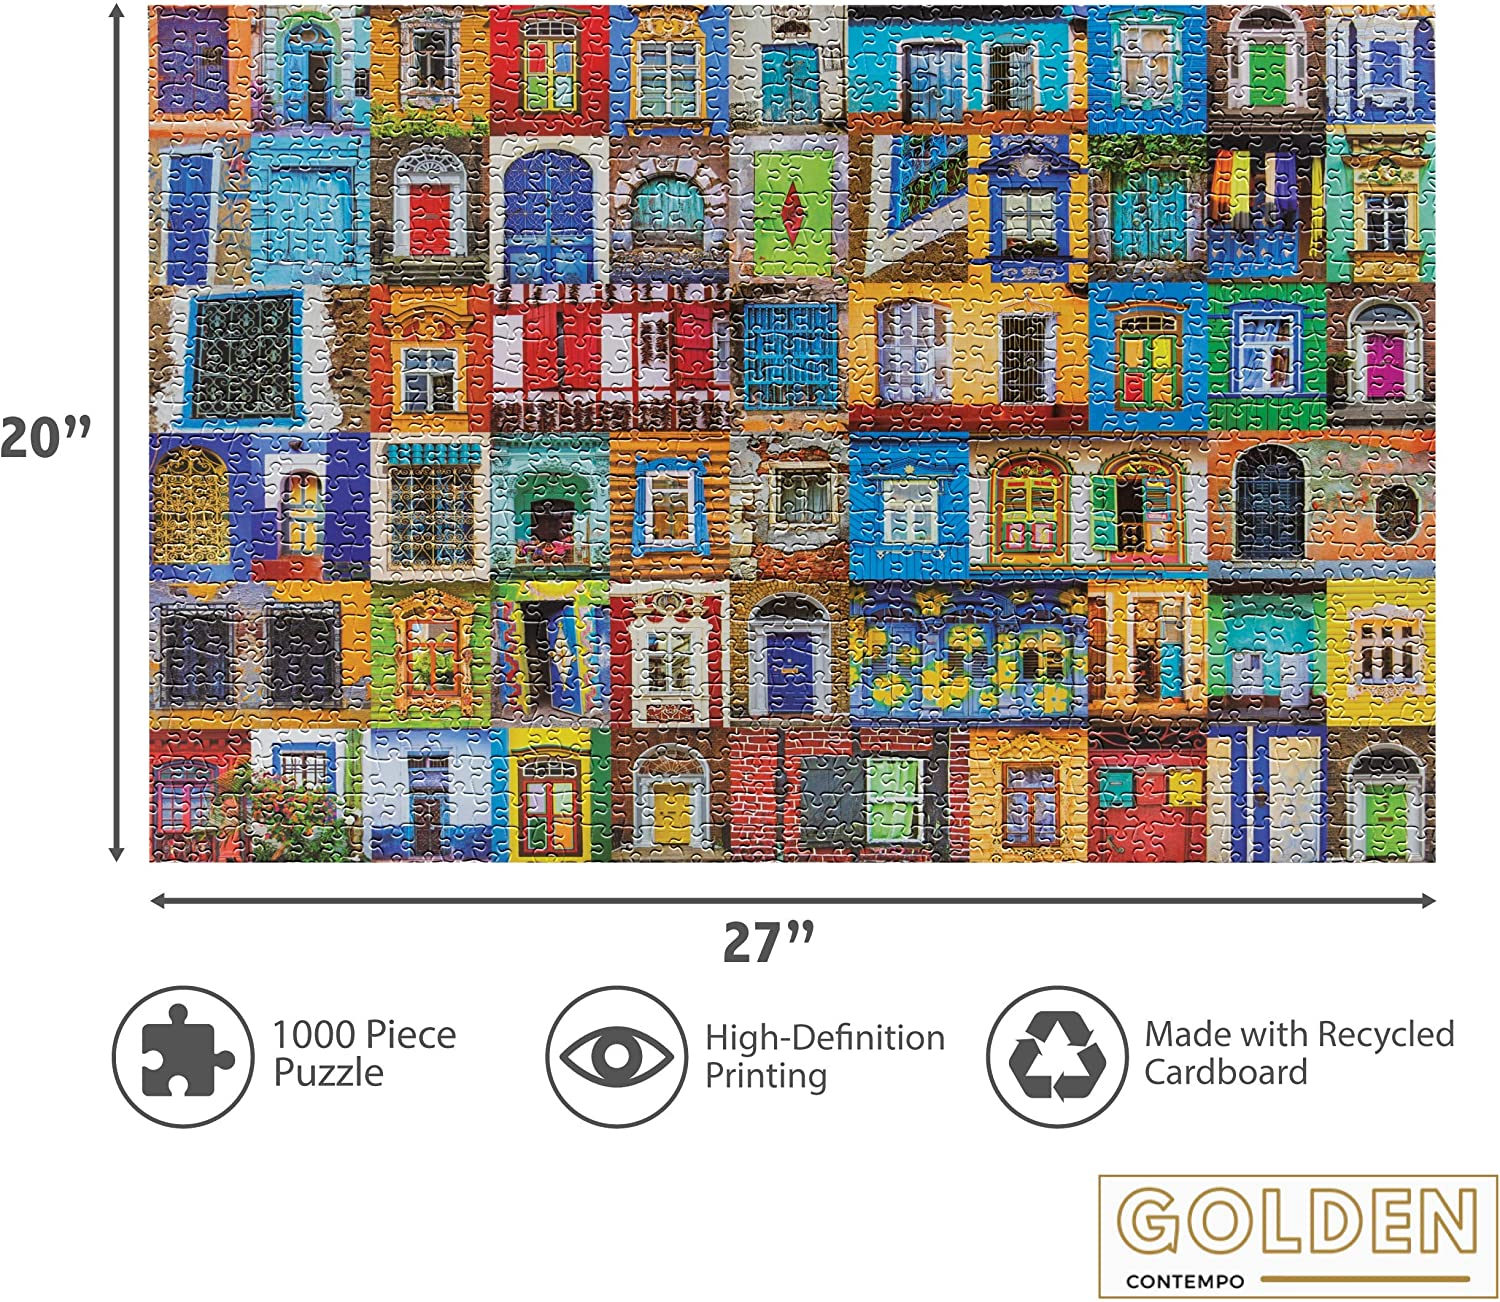 1000 Puzzle Pieces Print Image for Clarity and Vibrance Golden Contempo Precision-Cut High Challenge 1000-Piece A Few Doors Down Jigsaw Puzzle with Minimal Puzzle Dust for Adults